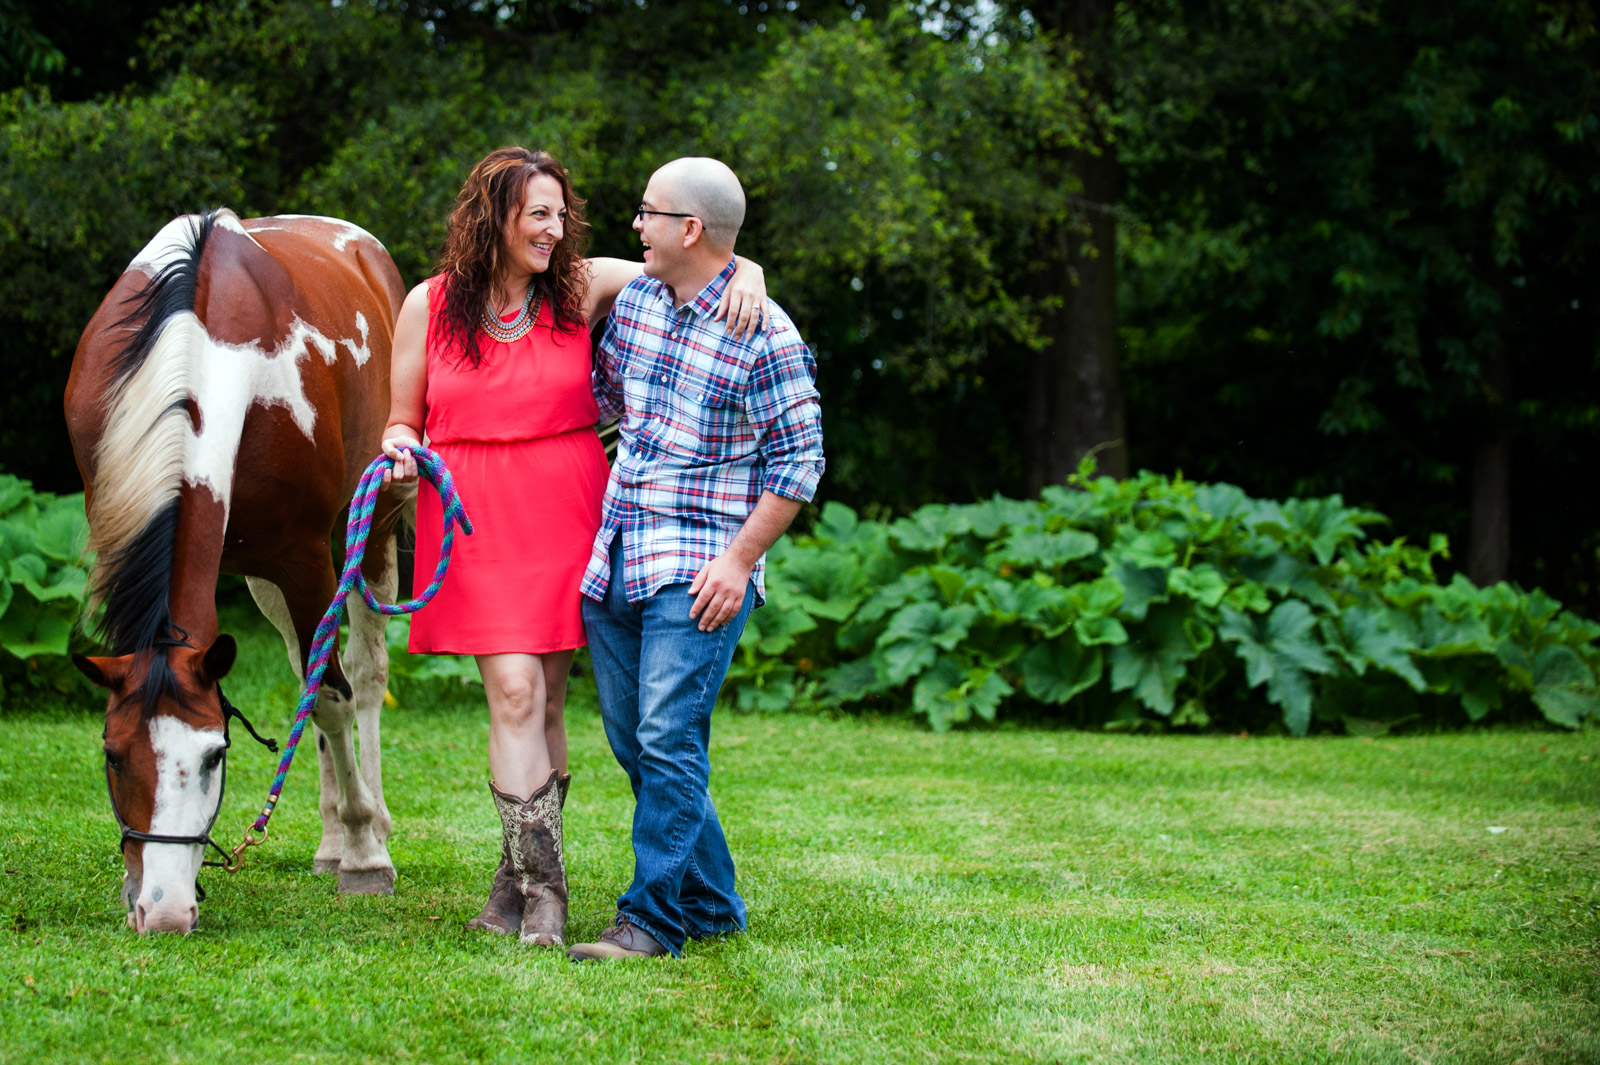 Farm engagement session photo with engaged couple and horse